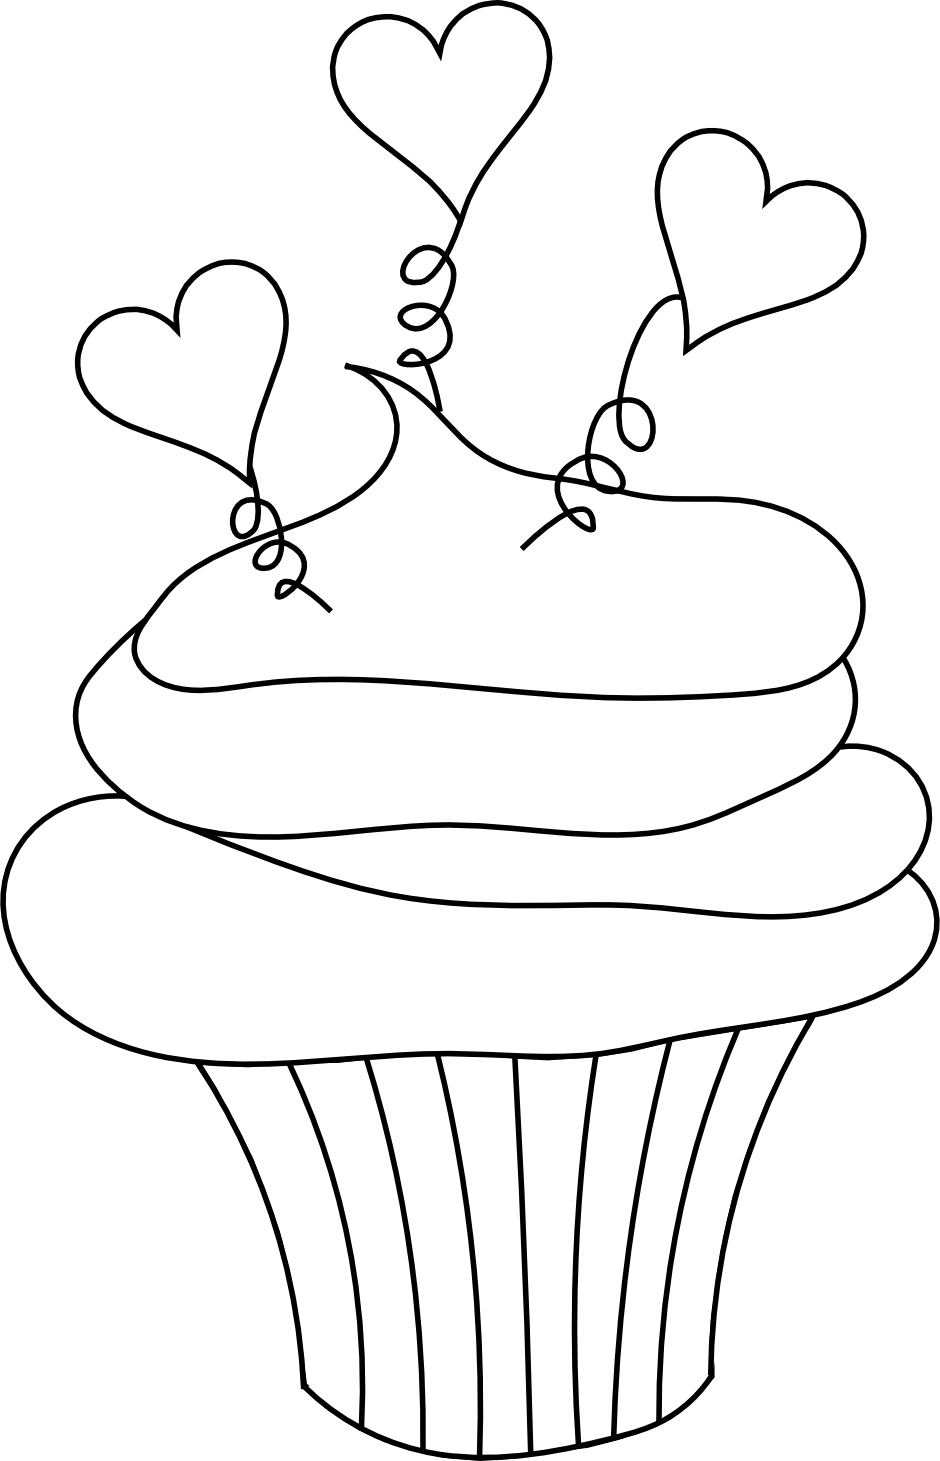 This Cupcake Image With Little Hearts is Perfect for